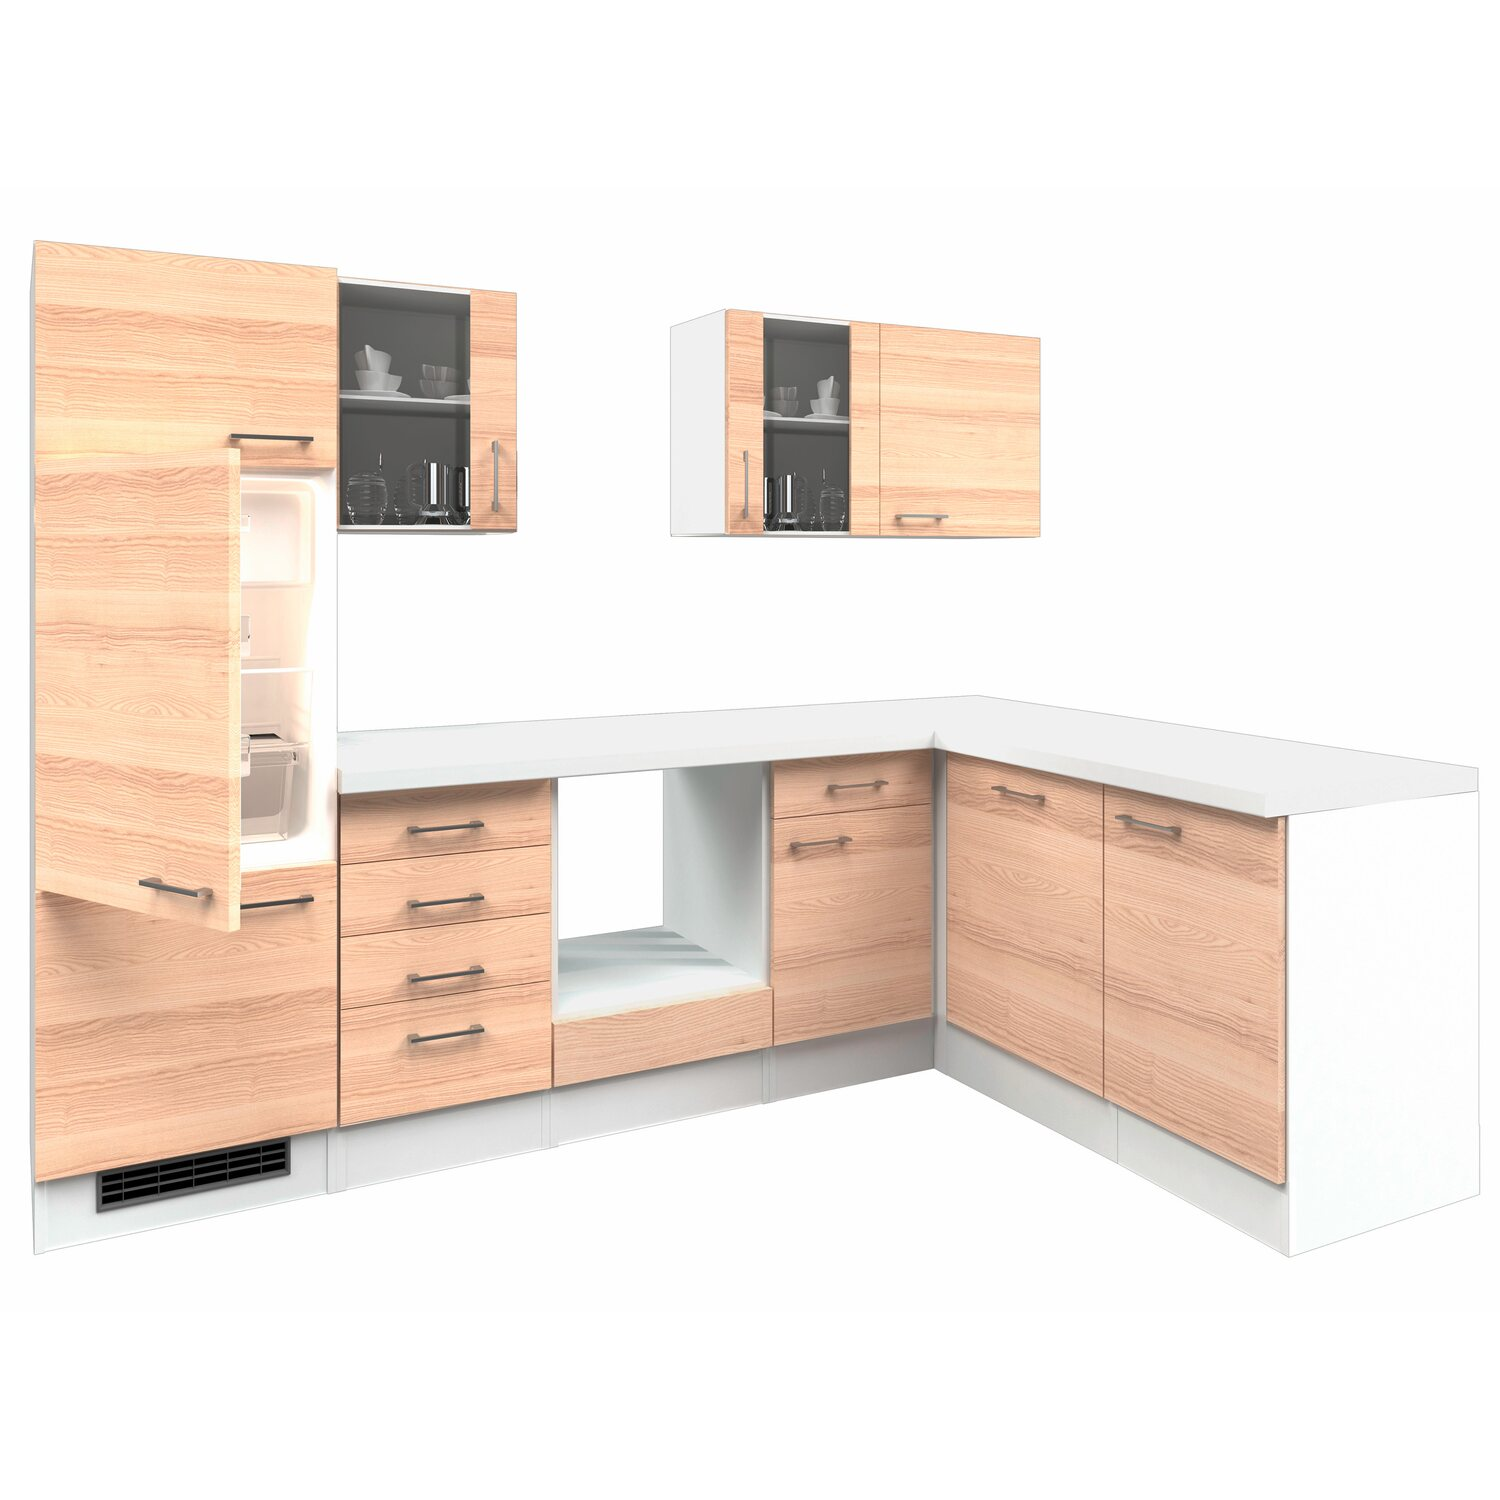 flex well exclusiv winkelk che akazia 280 cm ohne e ger te. Black Bedroom Furniture Sets. Home Design Ideas